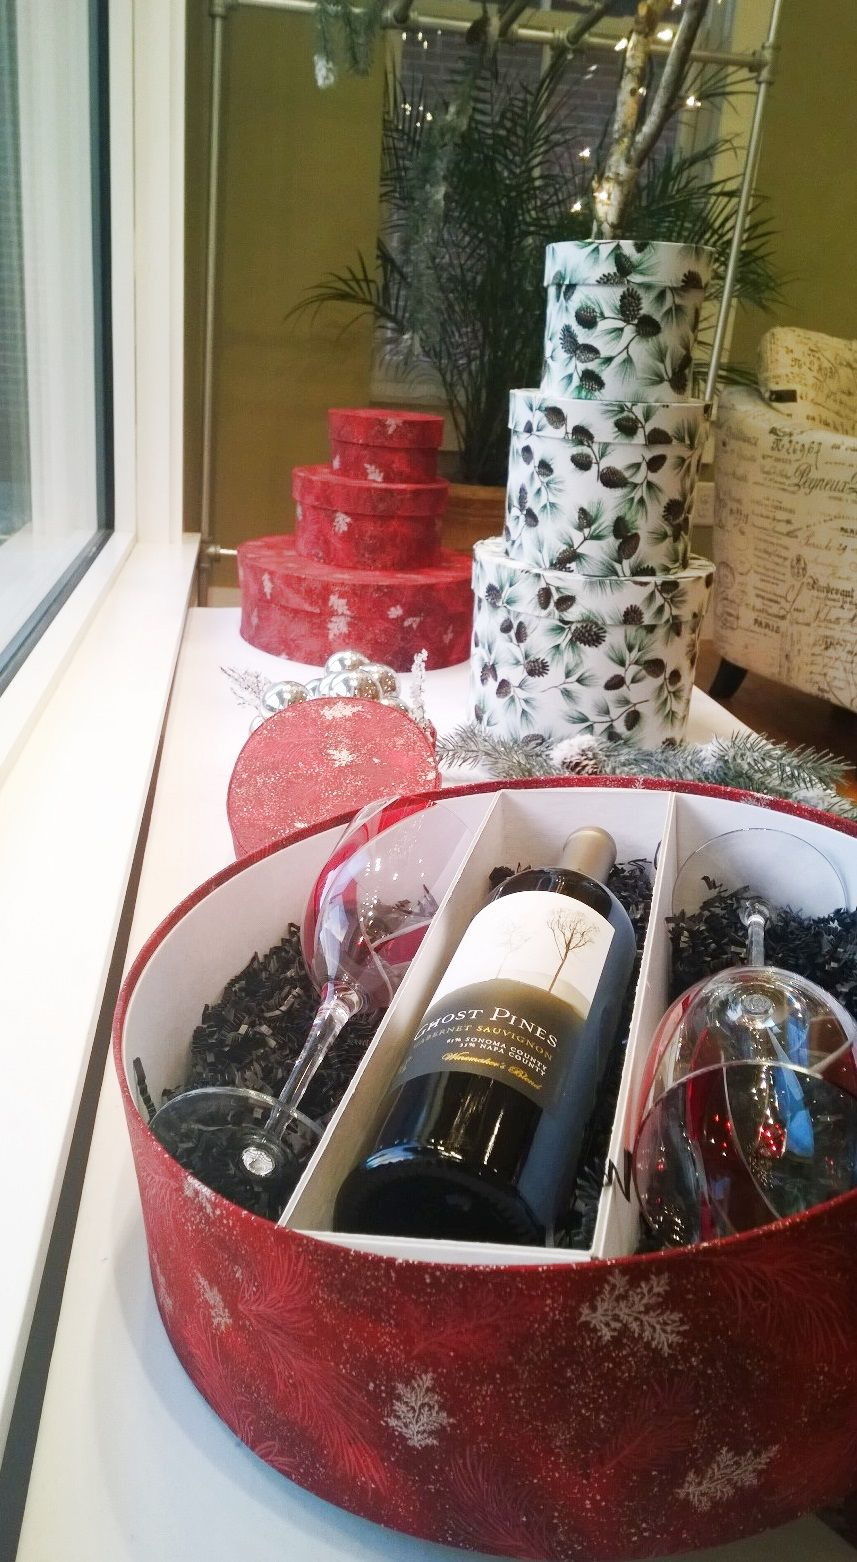 Hat Box Converted To Hold A Bottle Of Wine Champagne And Two Glasses Handmade At Sarah S Hat Boxes In Nh Gr Wine Gift Baskets Wedding Gift Baskets Wine Gifts